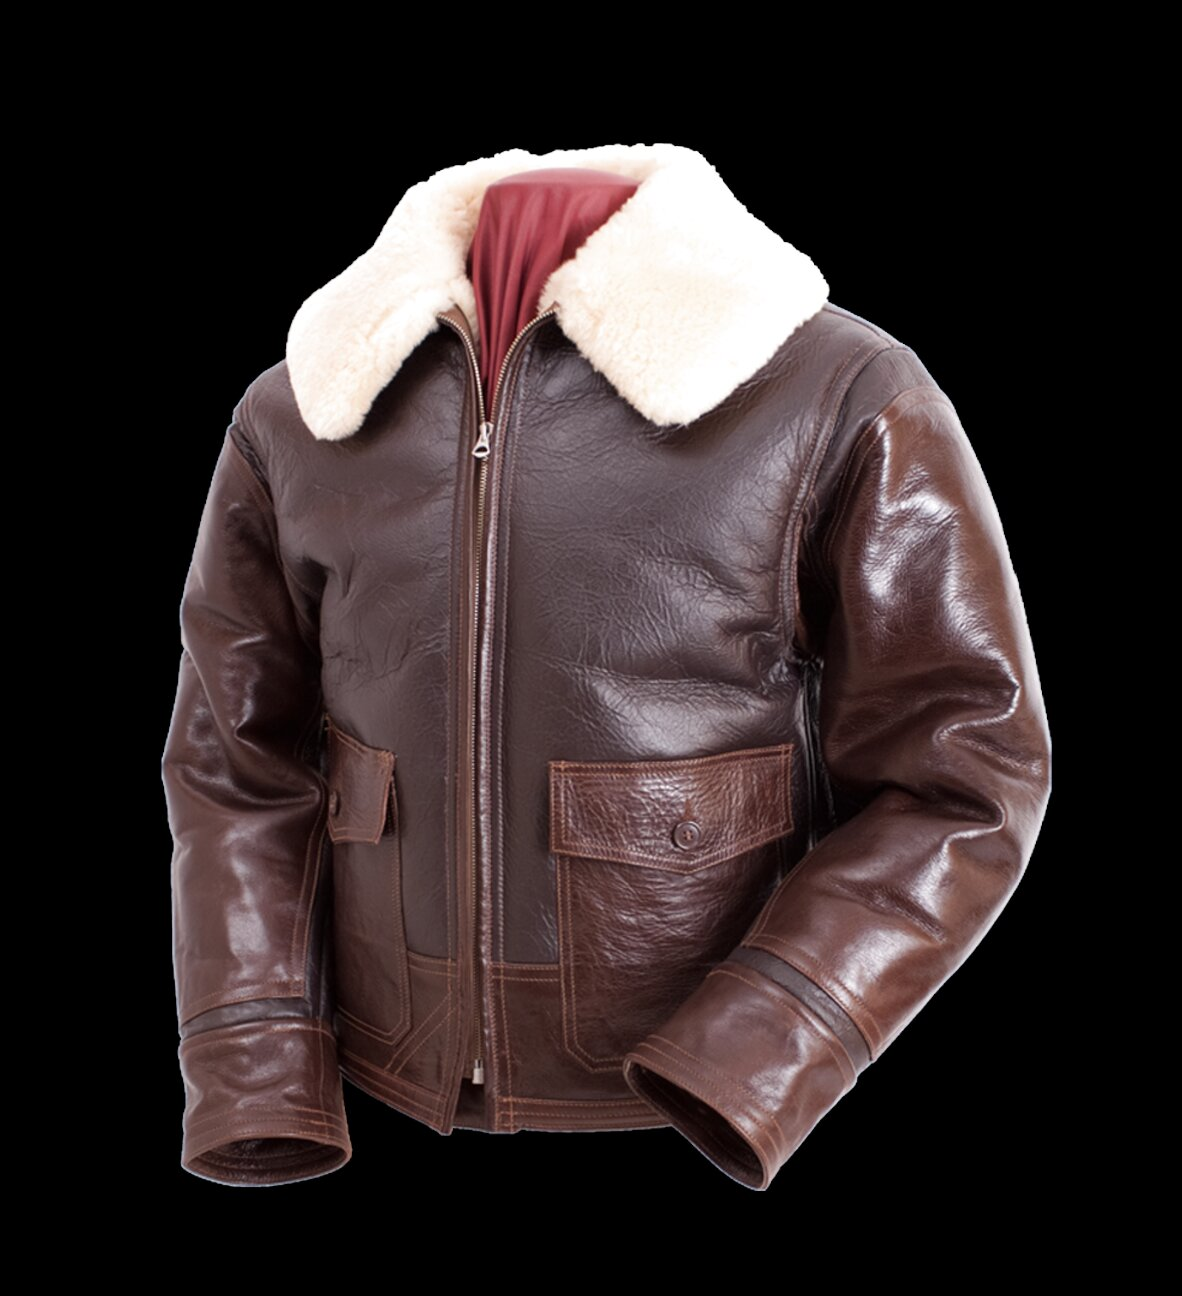 eastman leather jacket for sale